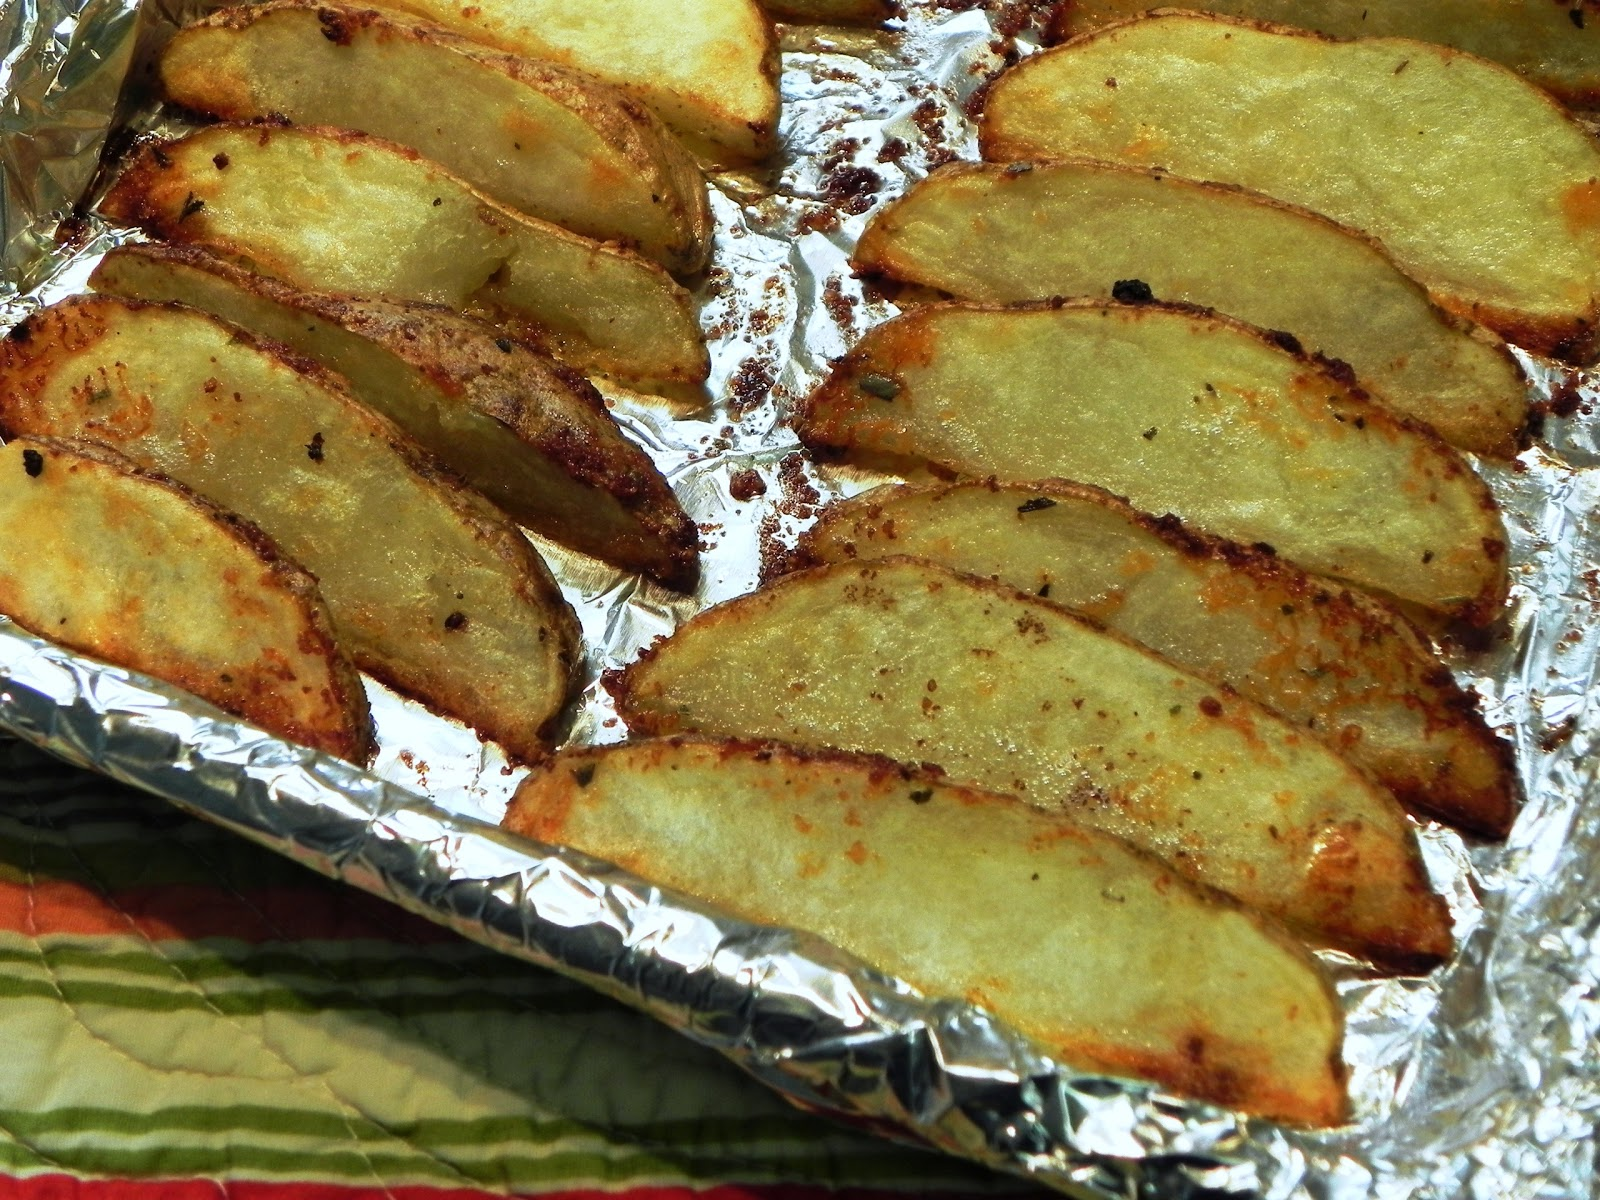 The Iowa Housewife: Parmesan Potato Wedges